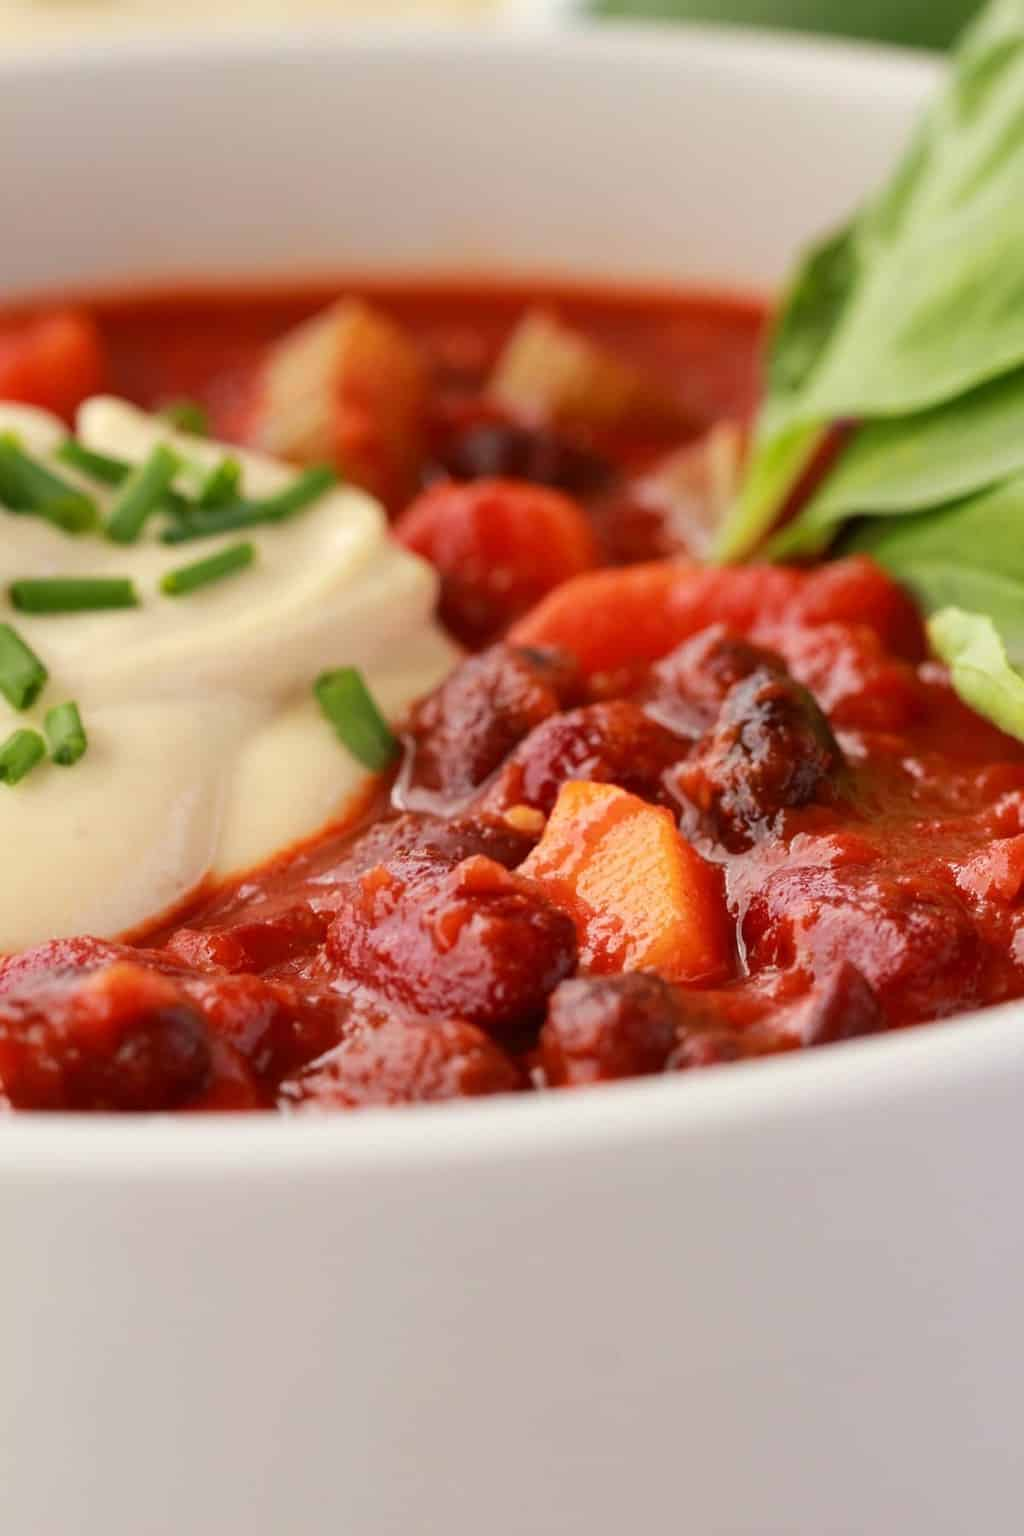 Vegan Chili in a white bowl with a dollop of cashew cream on top and chopped chives, fresh basil leaves on the side.